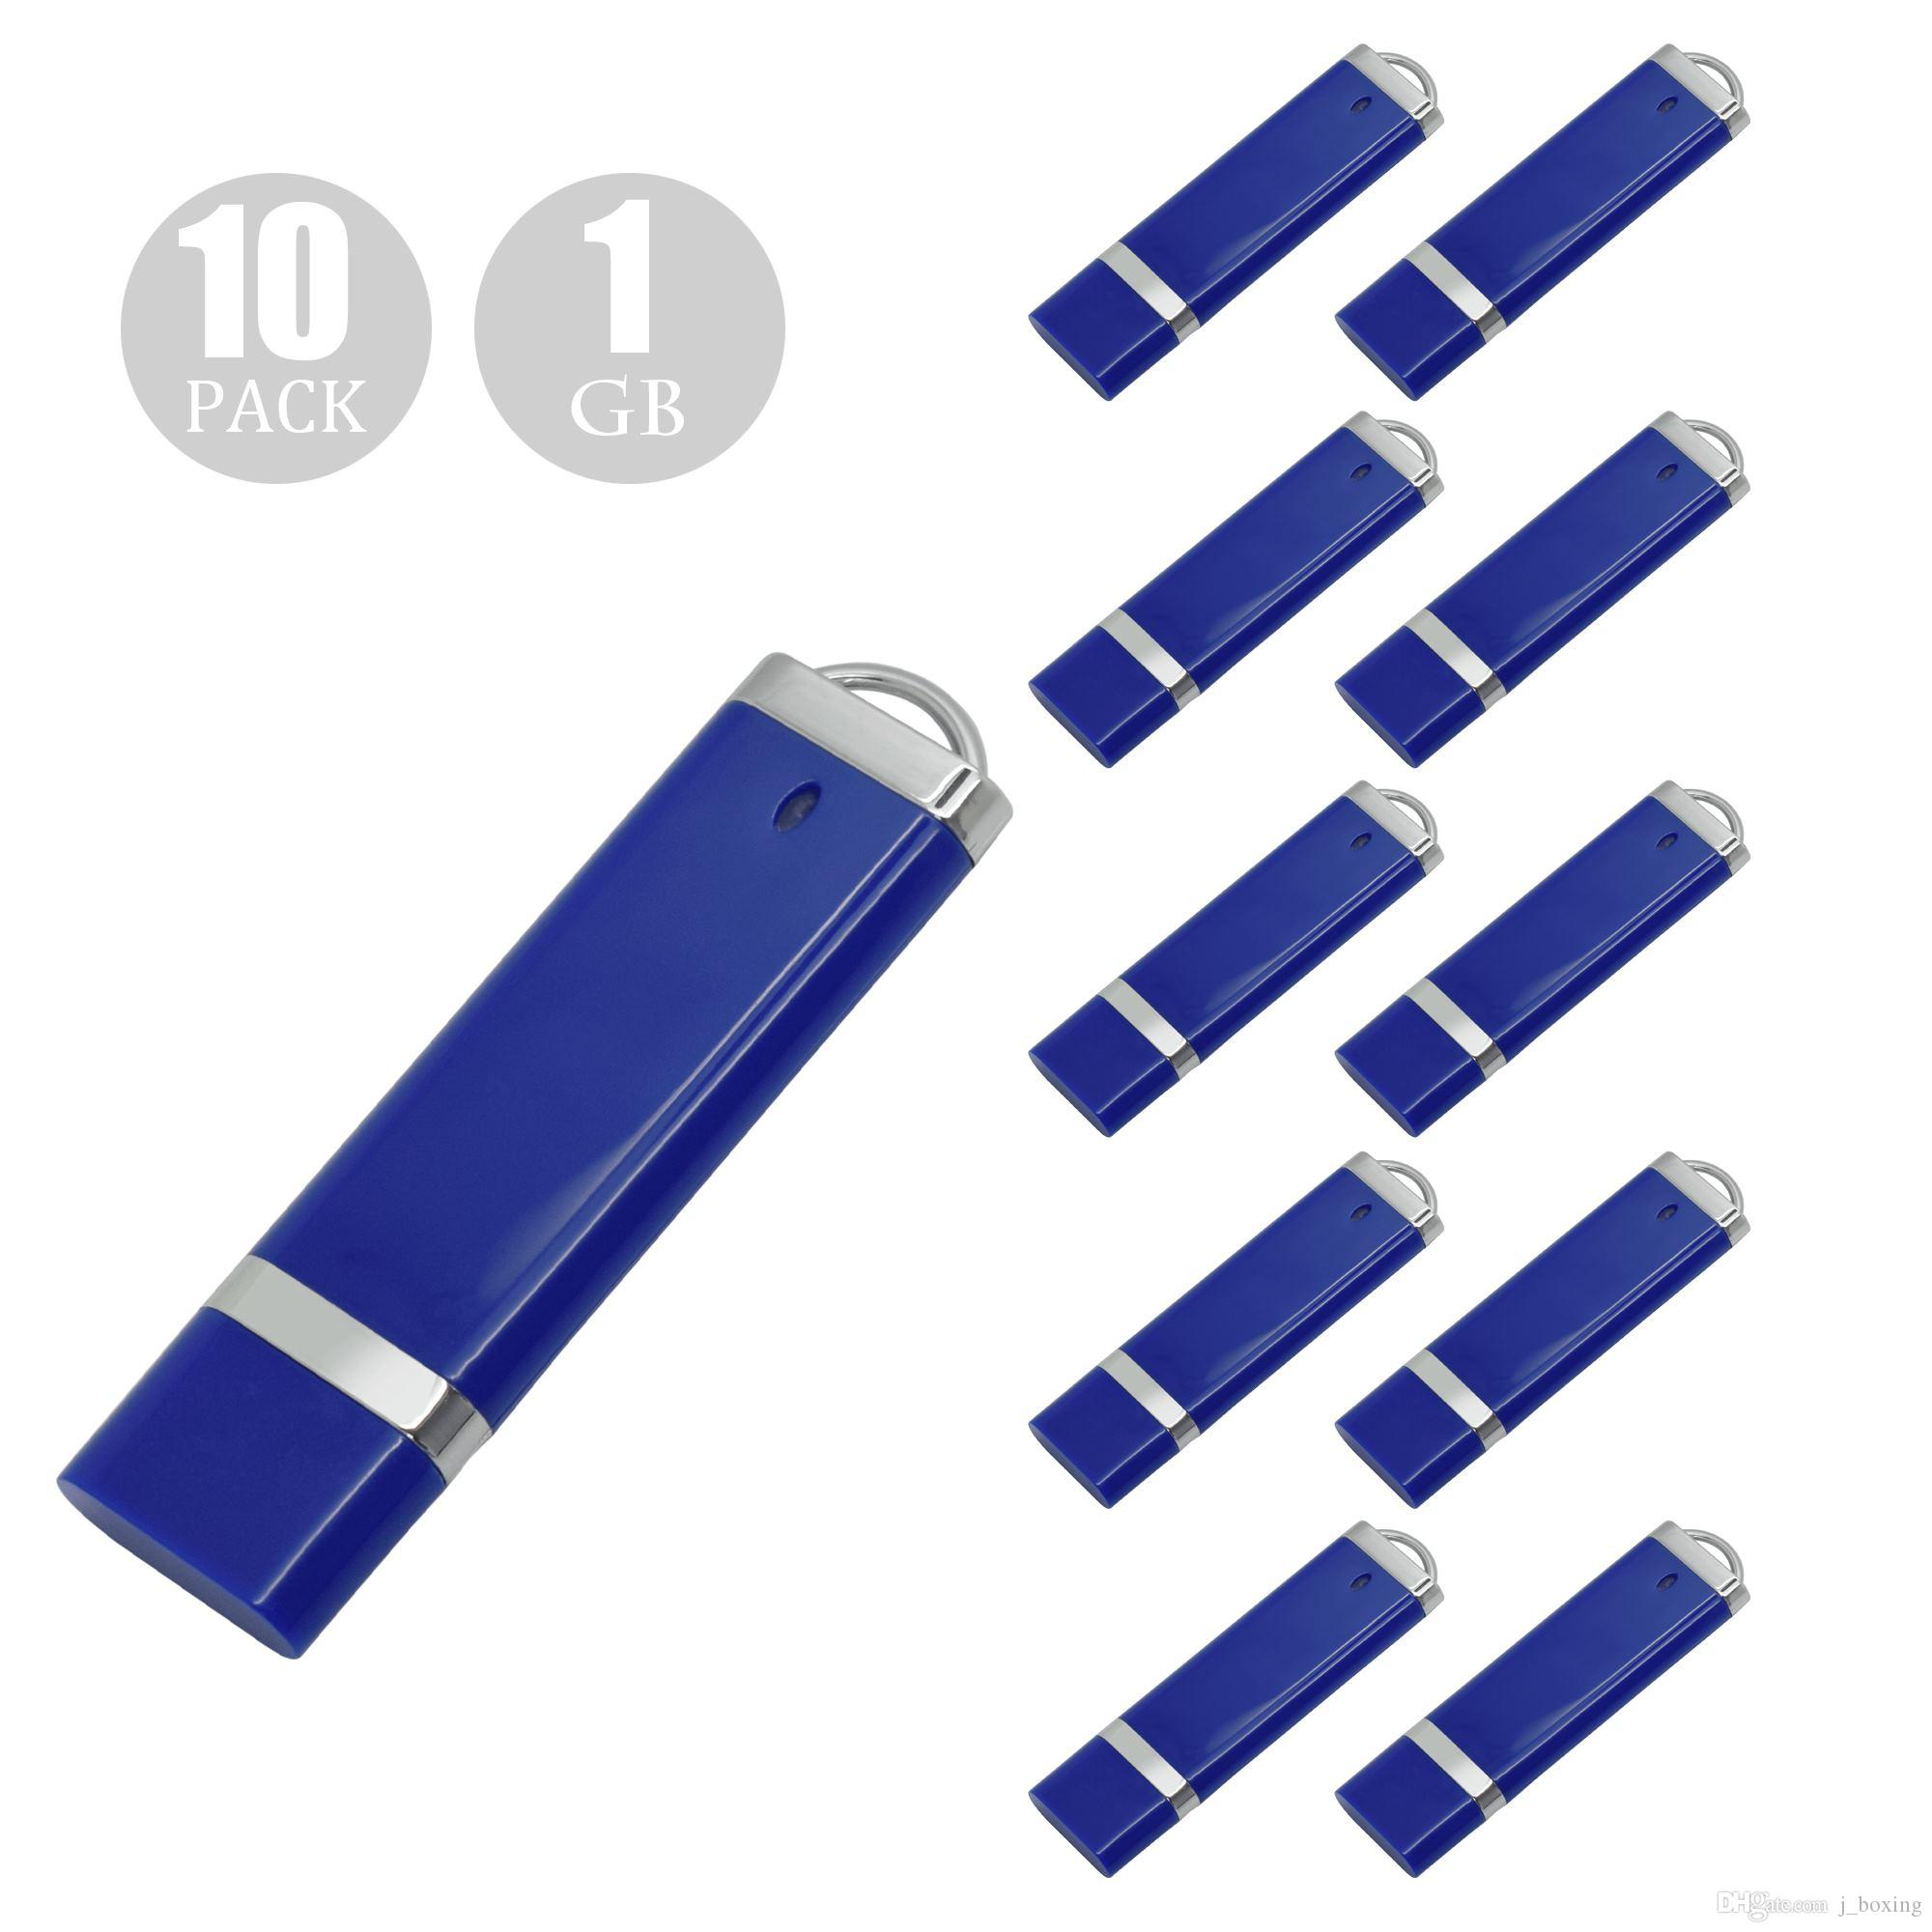 10PCS Blue Lighter Model USB 2.0 Flash Drives Pen Drives USB Memory Stick 64M 128M 256M 512M 1G 2G 4G 8G 16G 32G for PC Laptop Thumb Storage